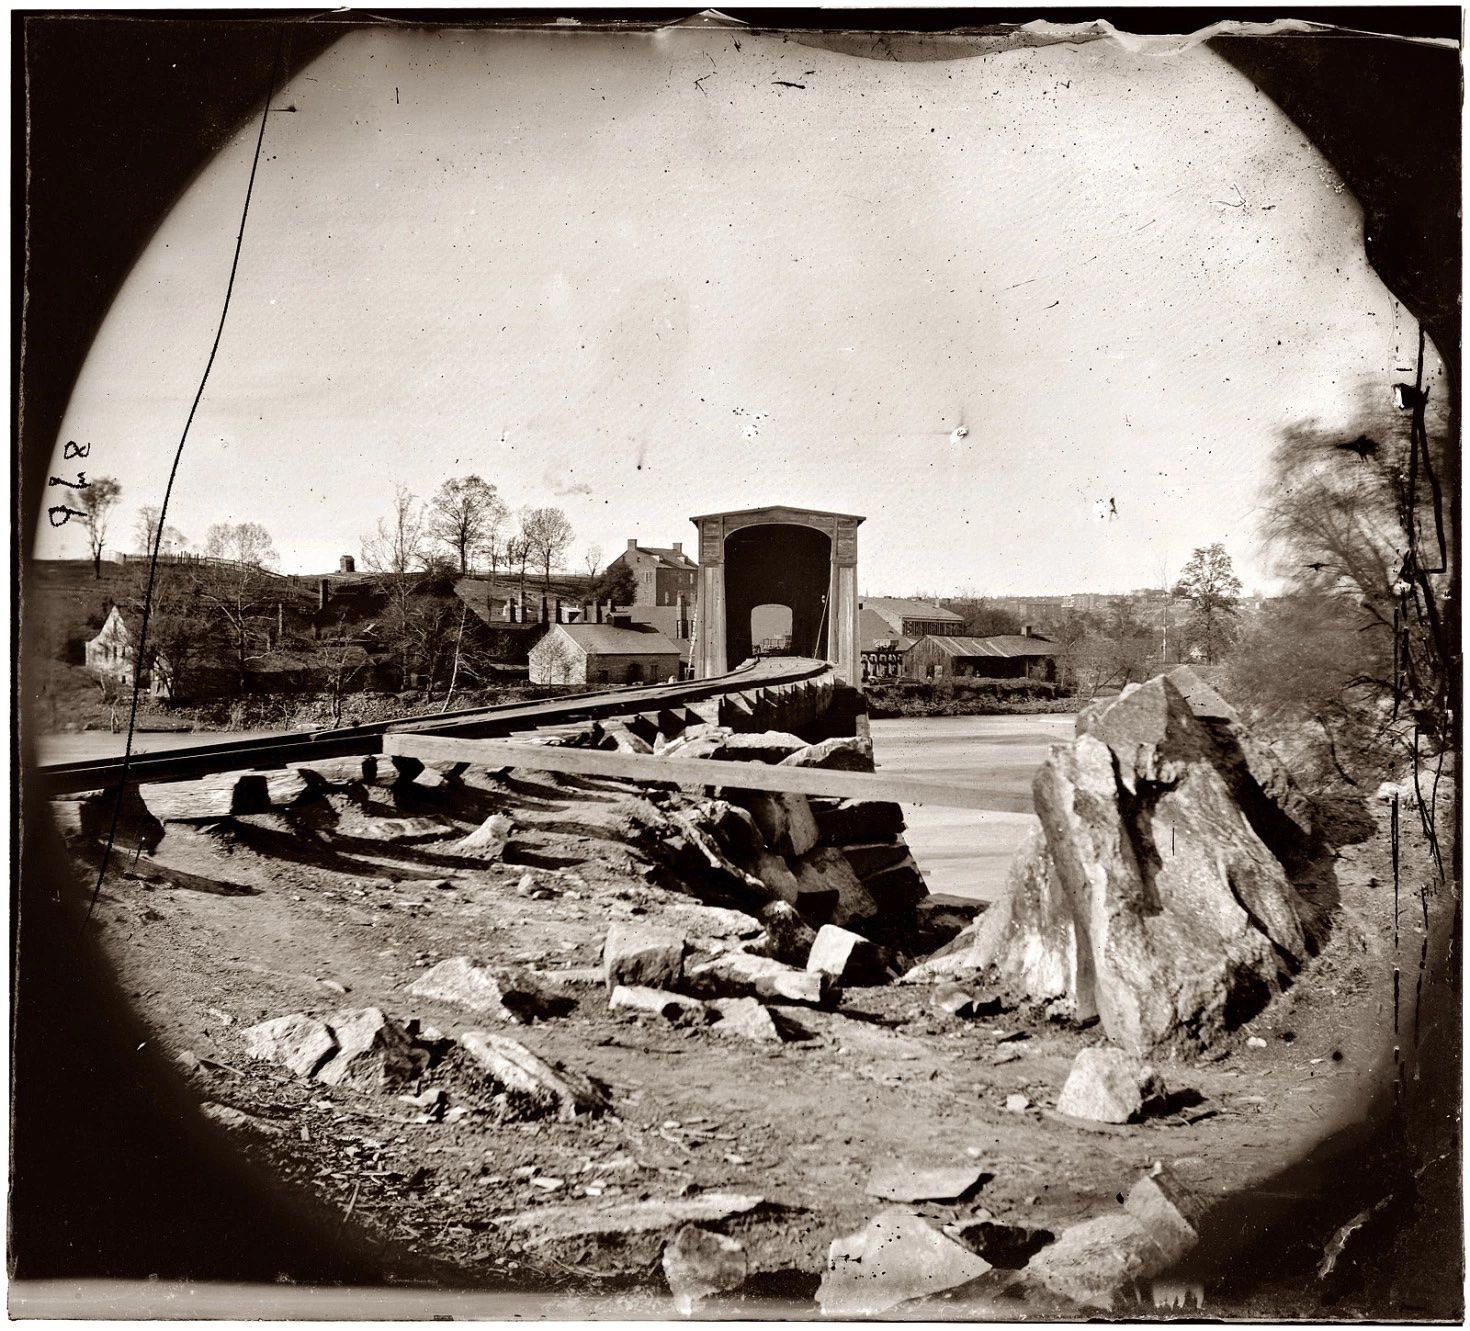 Spring 1865. Belle Isle railroad bridge from the south bank of the James River after the fall of Richmond. Glass plate negative from the Civil War collection compiled by Hirst D. Milhollen and Donald H. Mugridge.